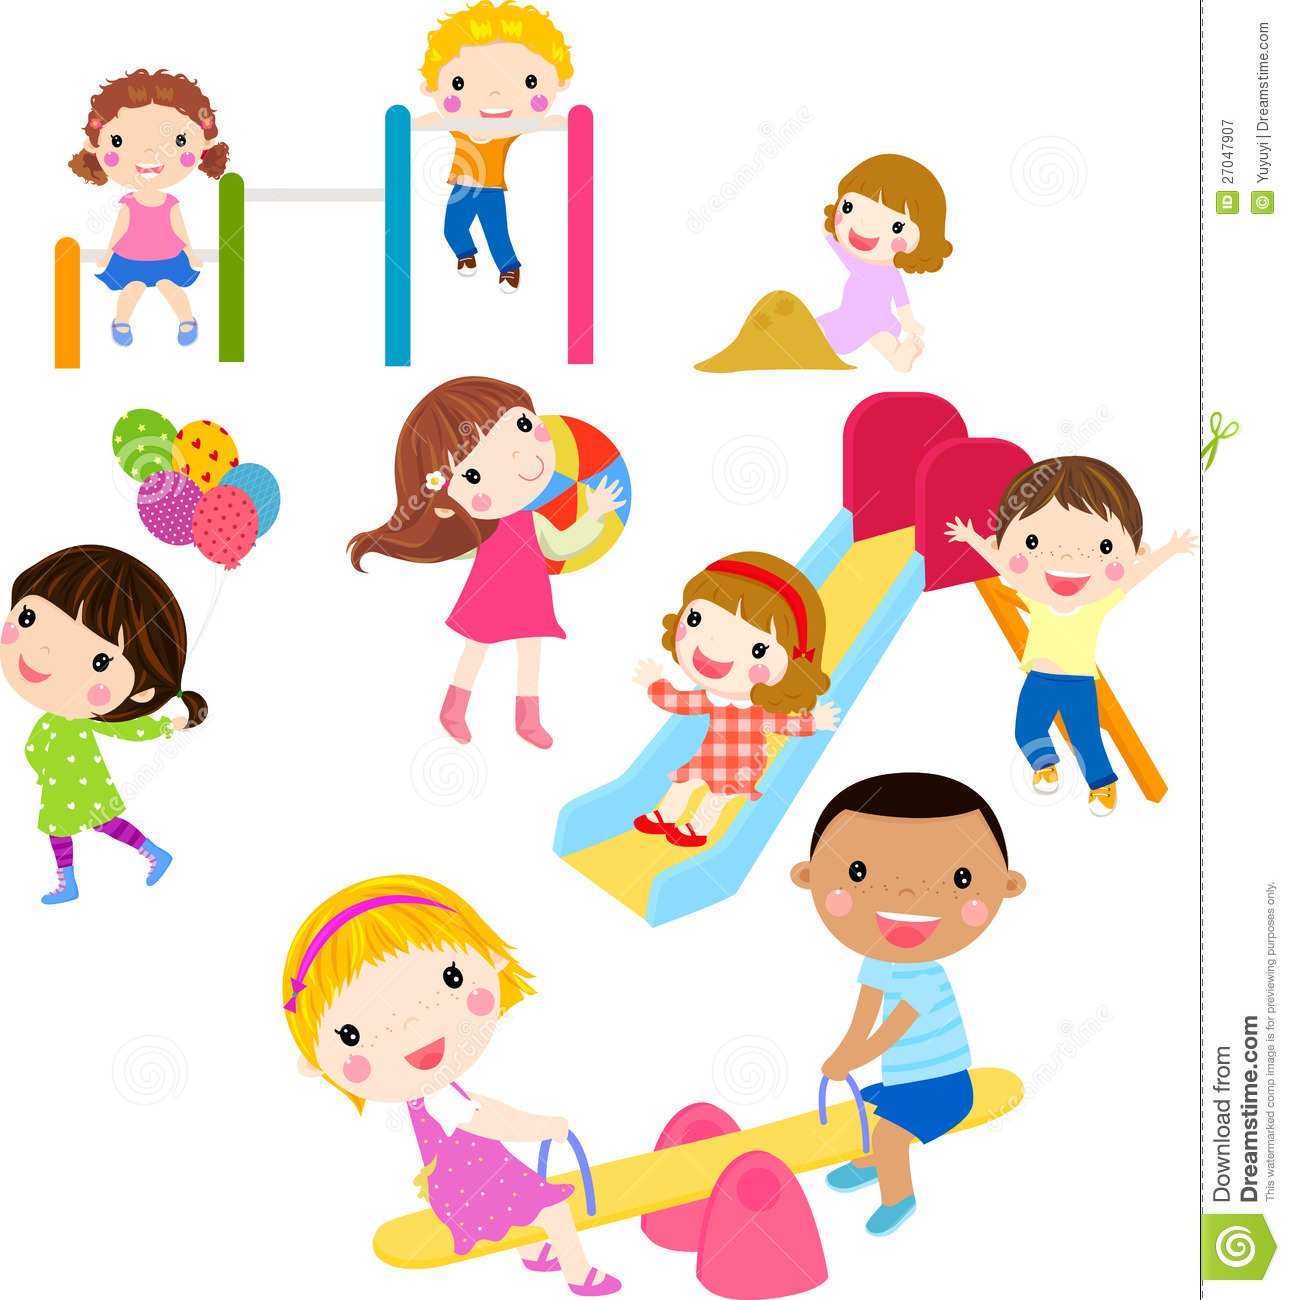 Children fun clipart clipground